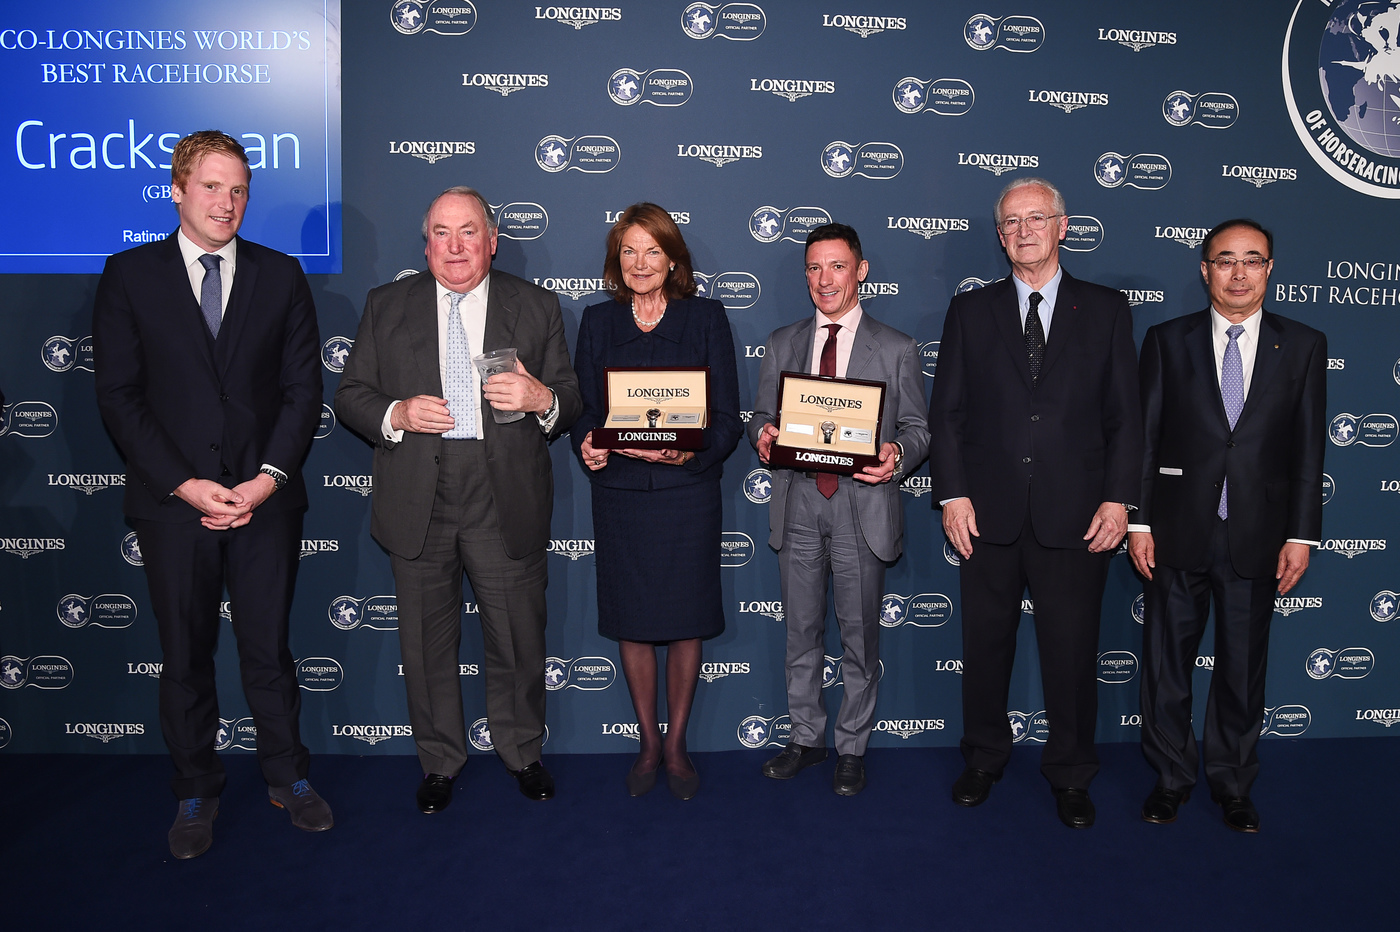 Longines Flat Racing Event: Winx and Cracksman named the 2018 Longines World's Best Racehorses, Qatar Prix de l'Arc de Triomphe crowned Longines World's Best Horse Race for the third time 9